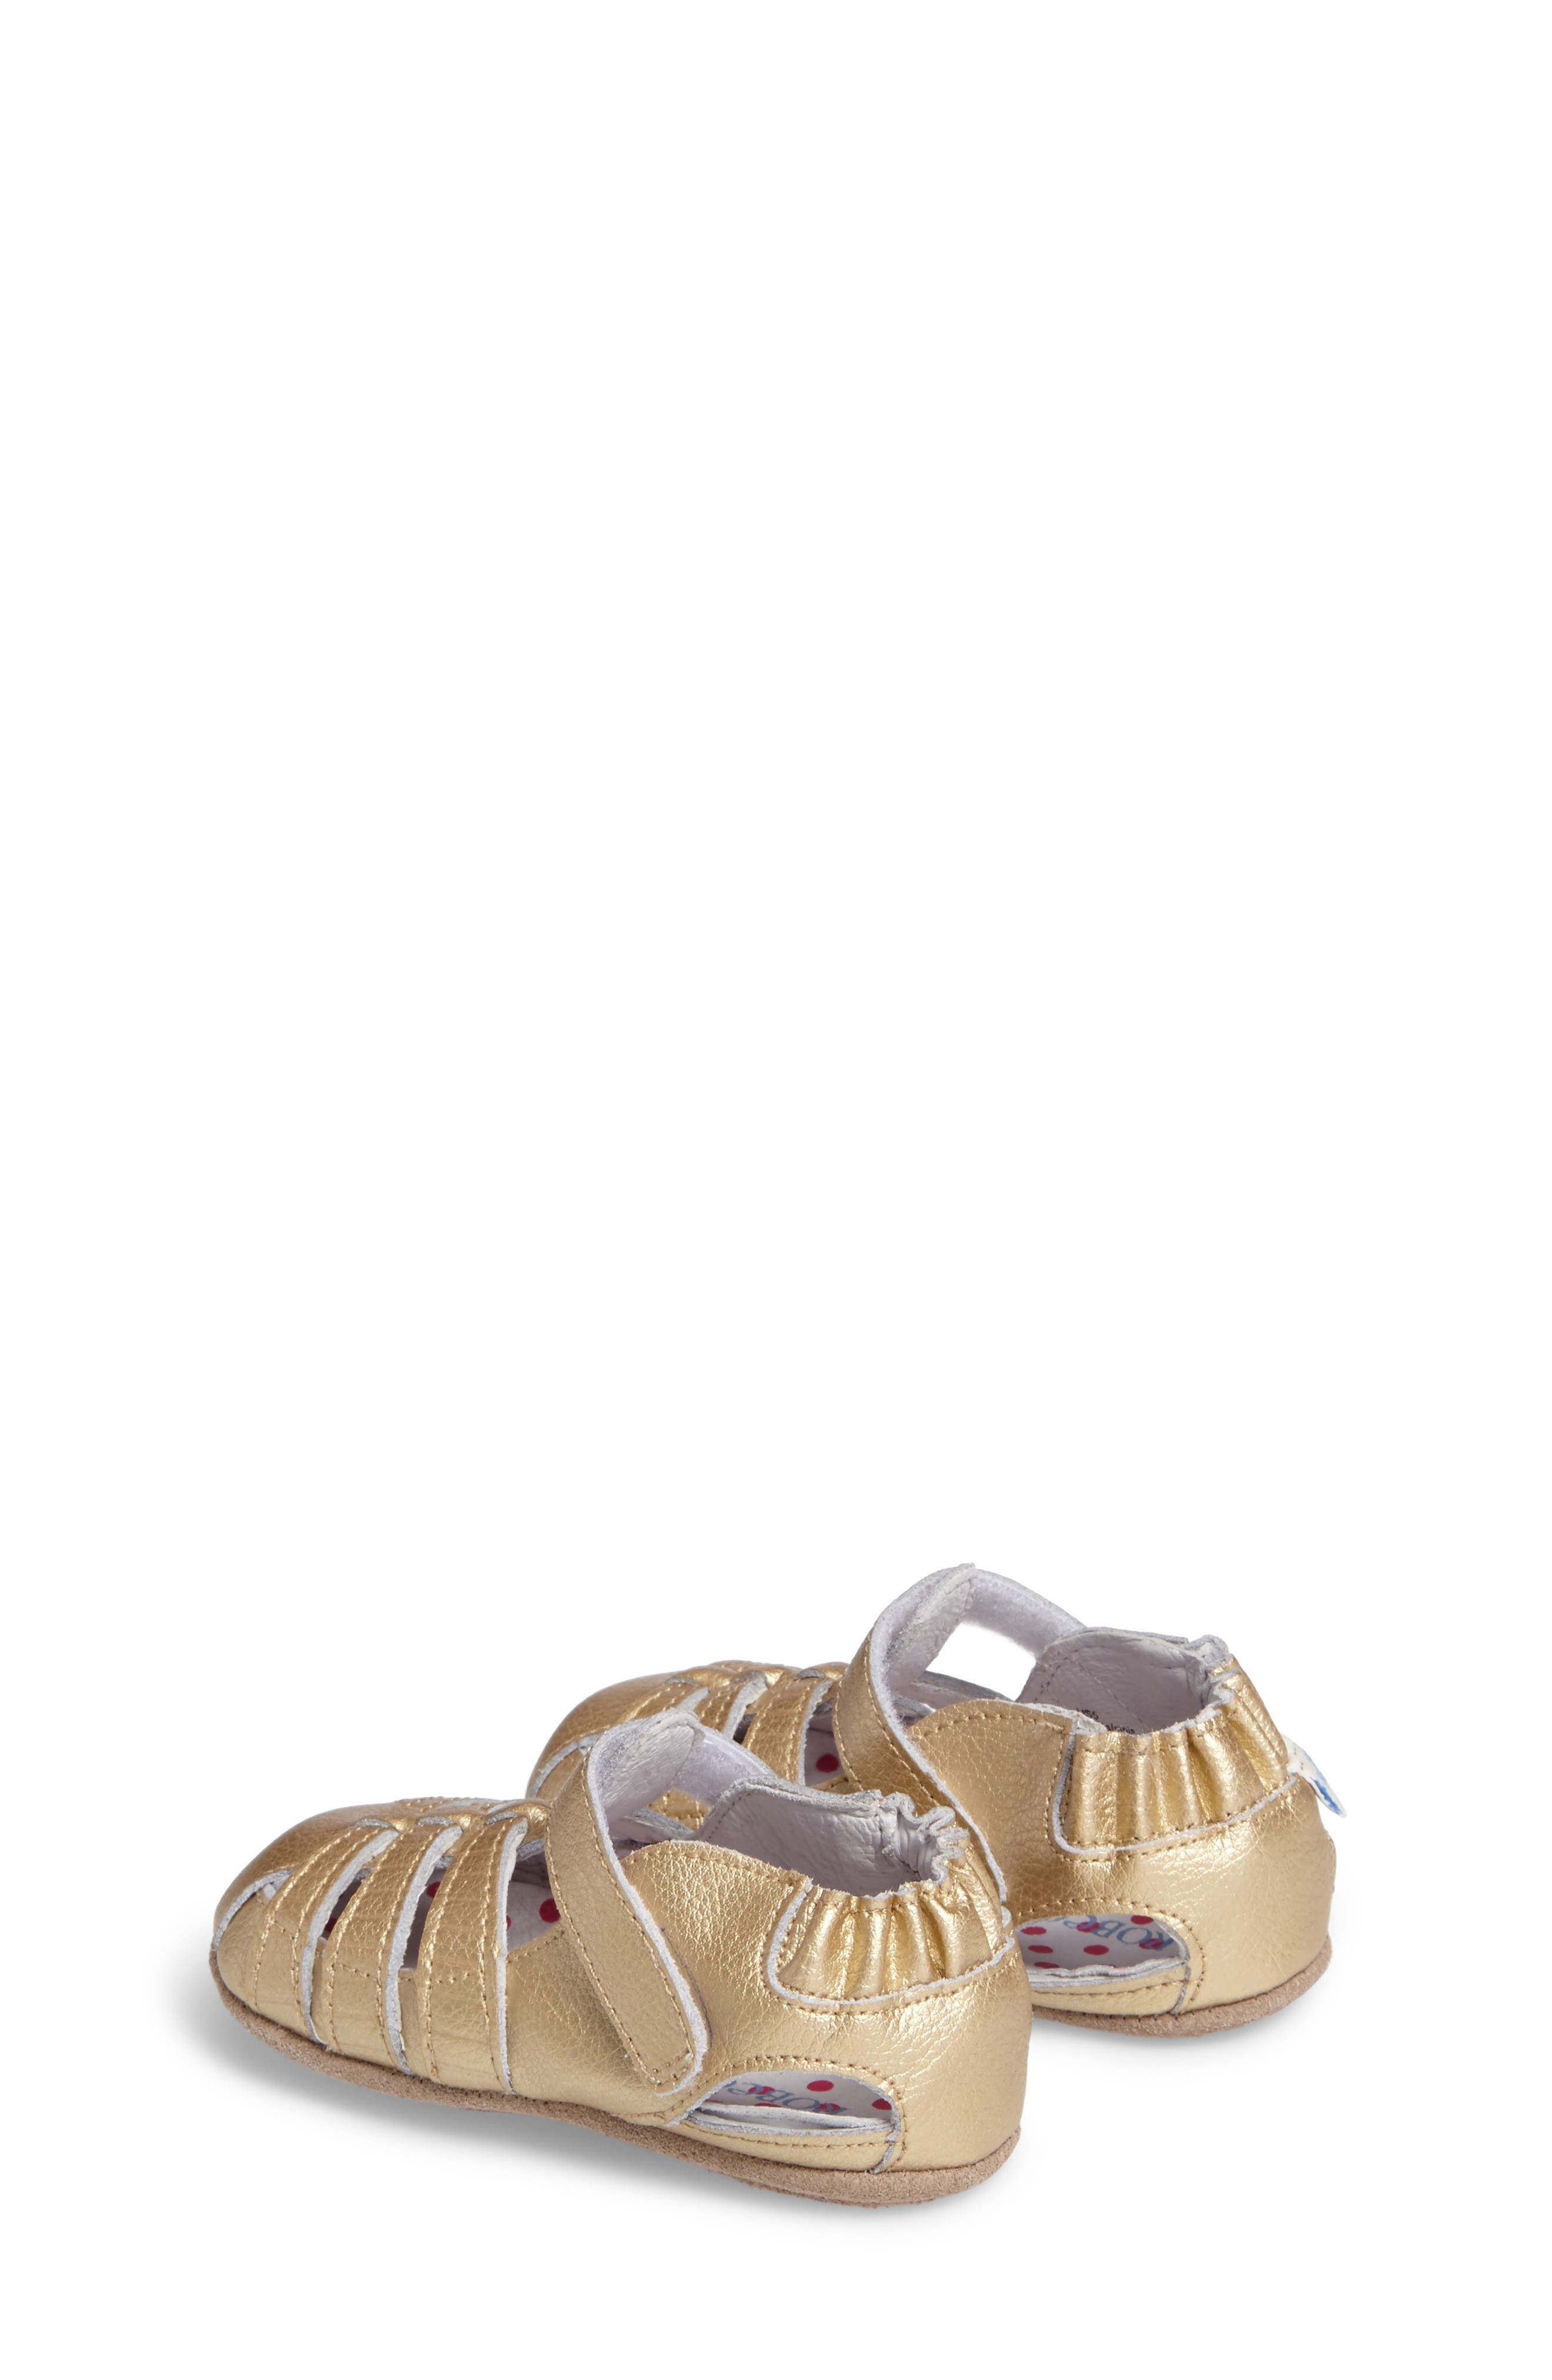 Paris Crib Shoe,                             Alternate thumbnail 2, color,                             Gold